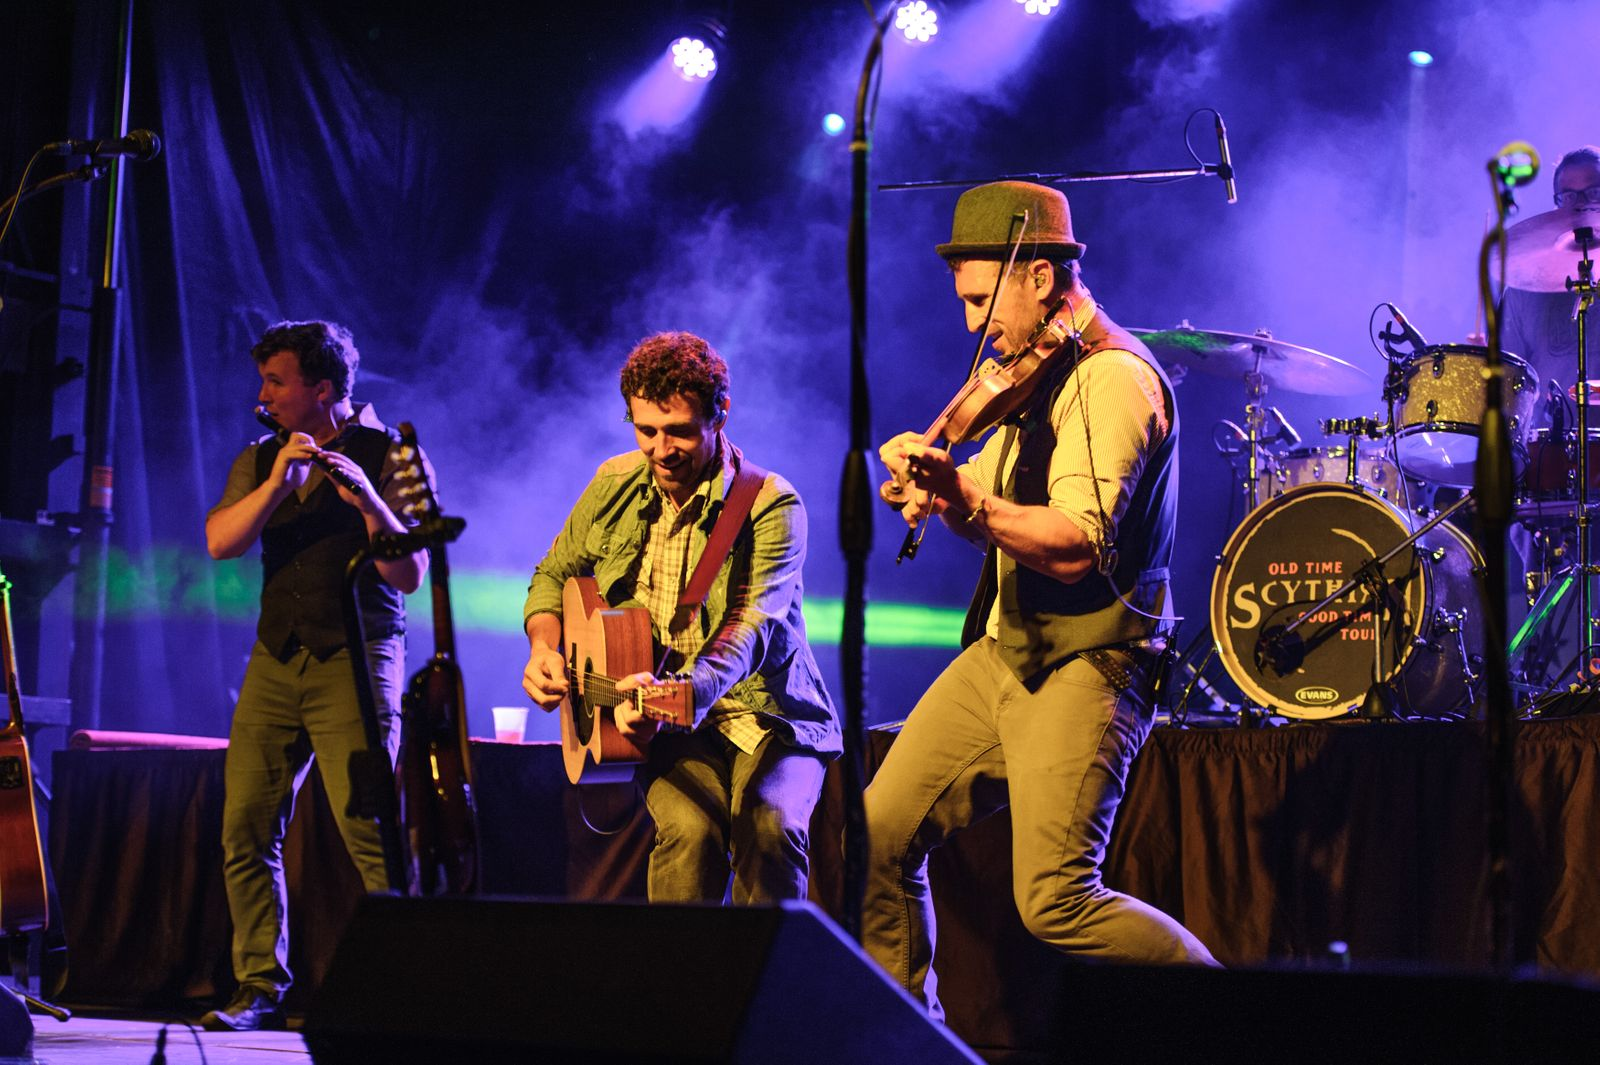 Scythian | Photo by Danielle Lussier